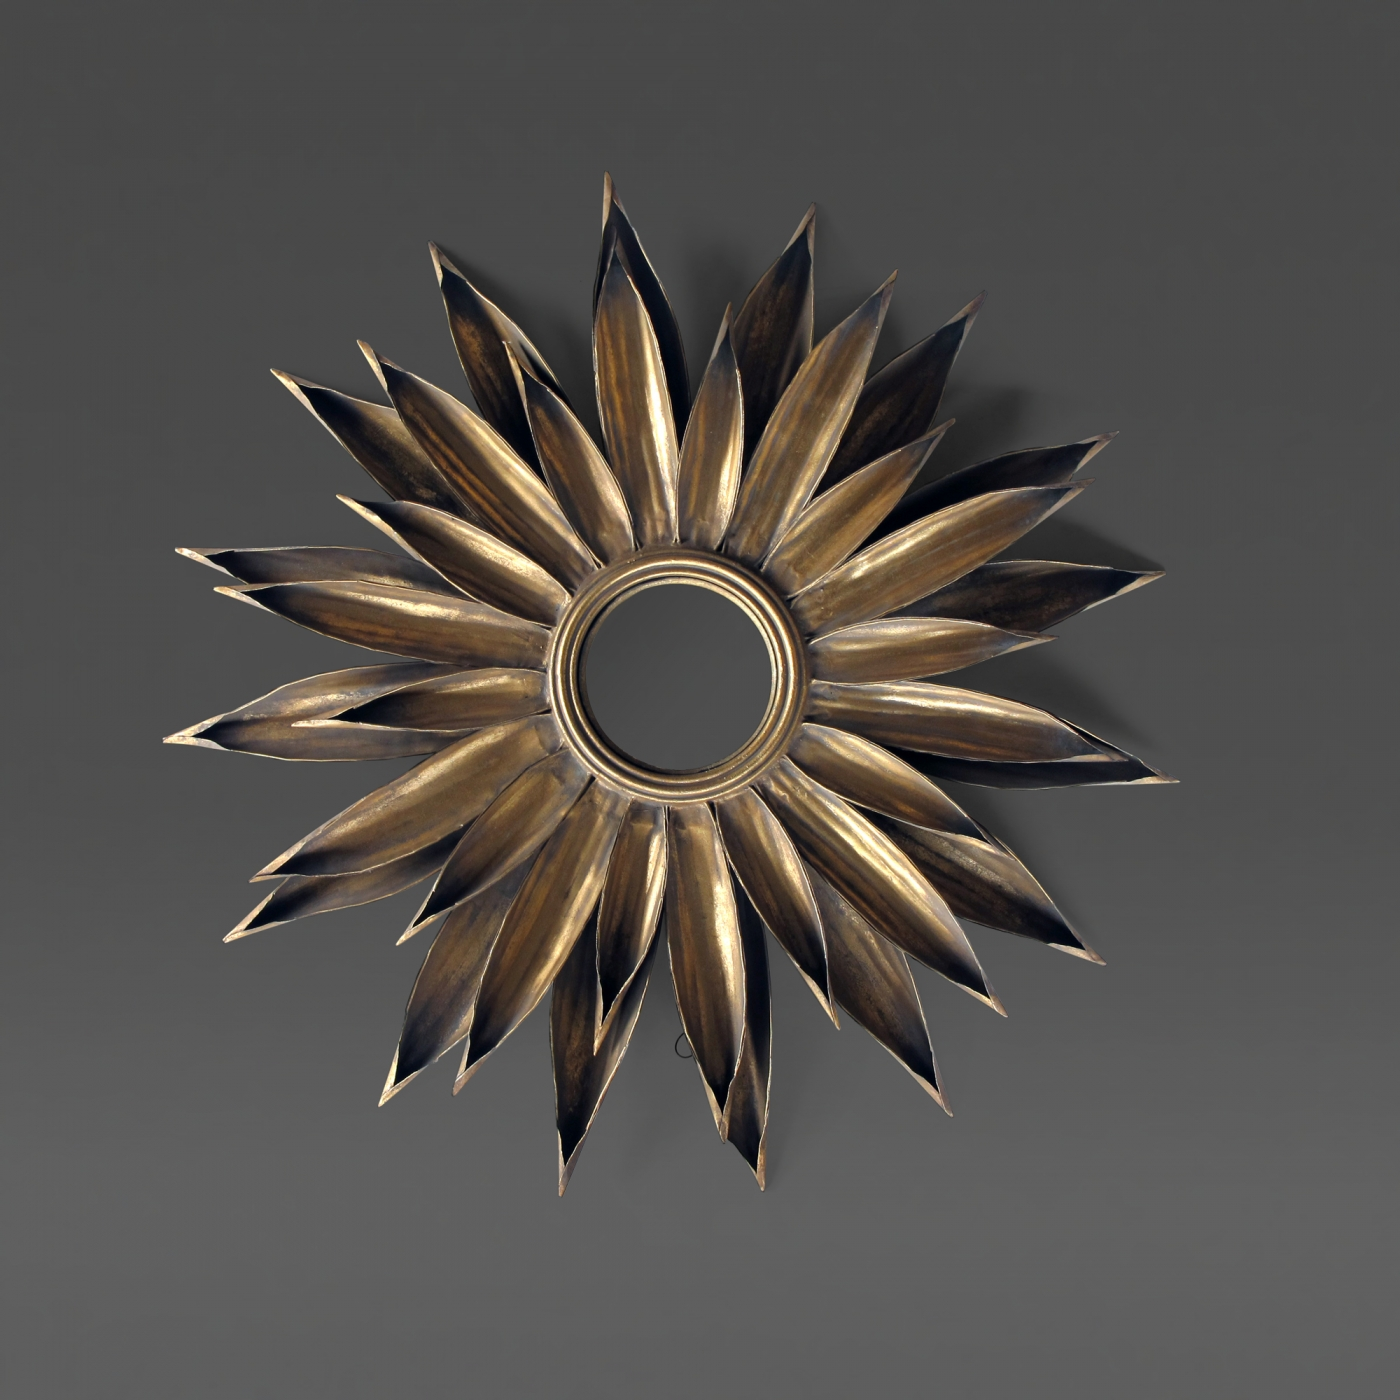 A Large Scaled French 1940's Gilt Tole Foliate Starburst Convex Mirror For Starburst Convex Mirrors (View 2 of 15)